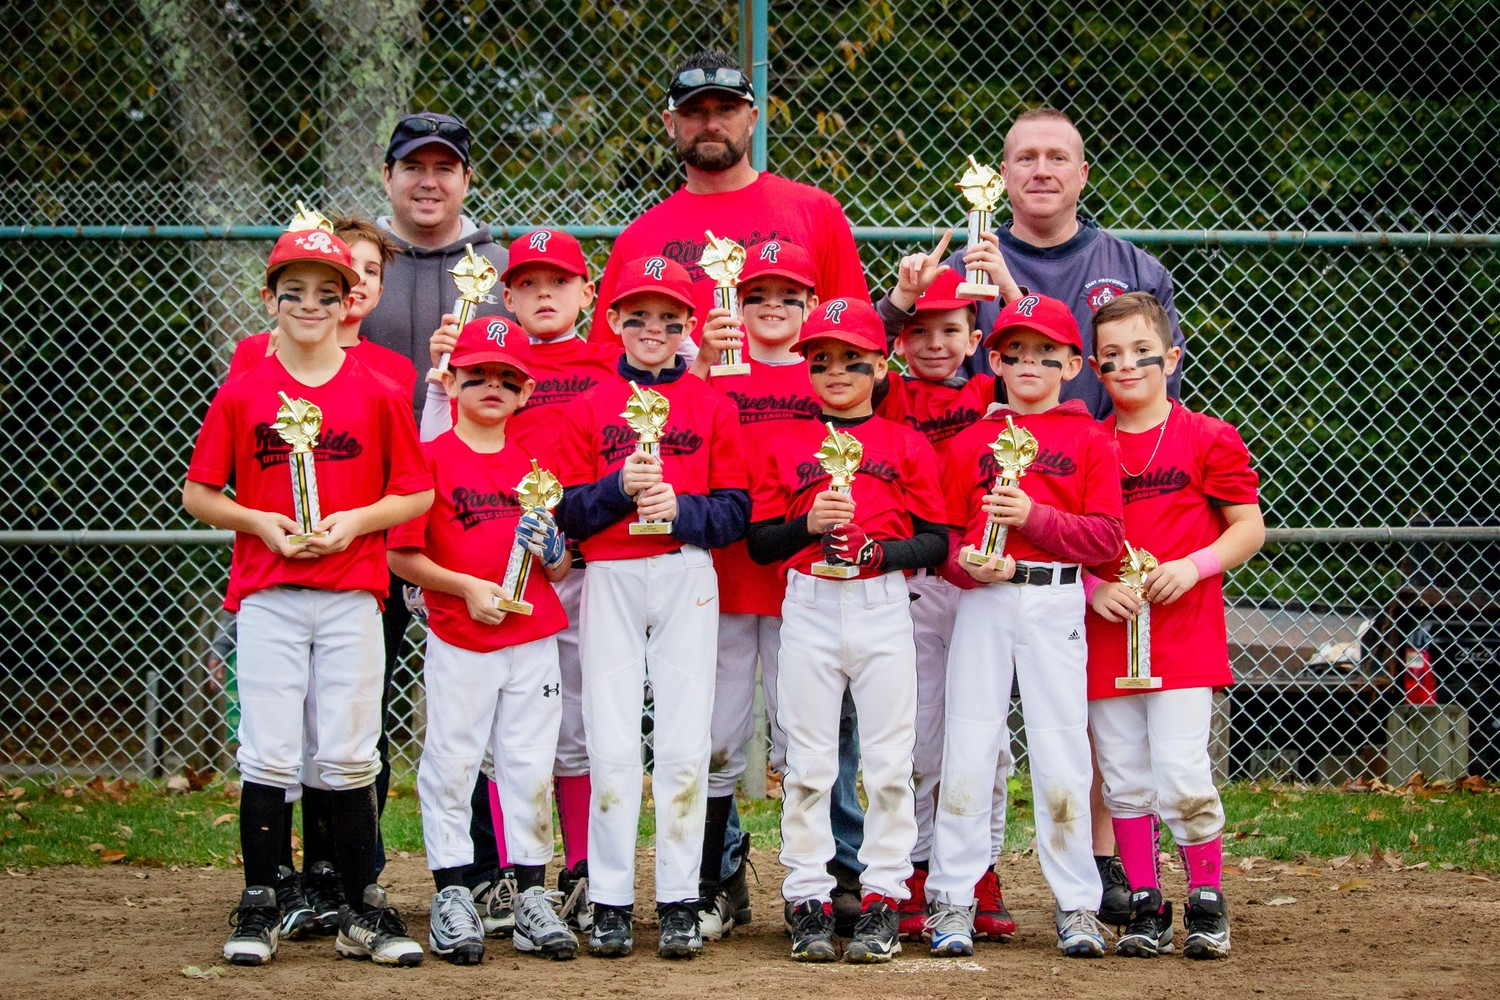 Riverside Little League Boys Minors Fall Ball Champions